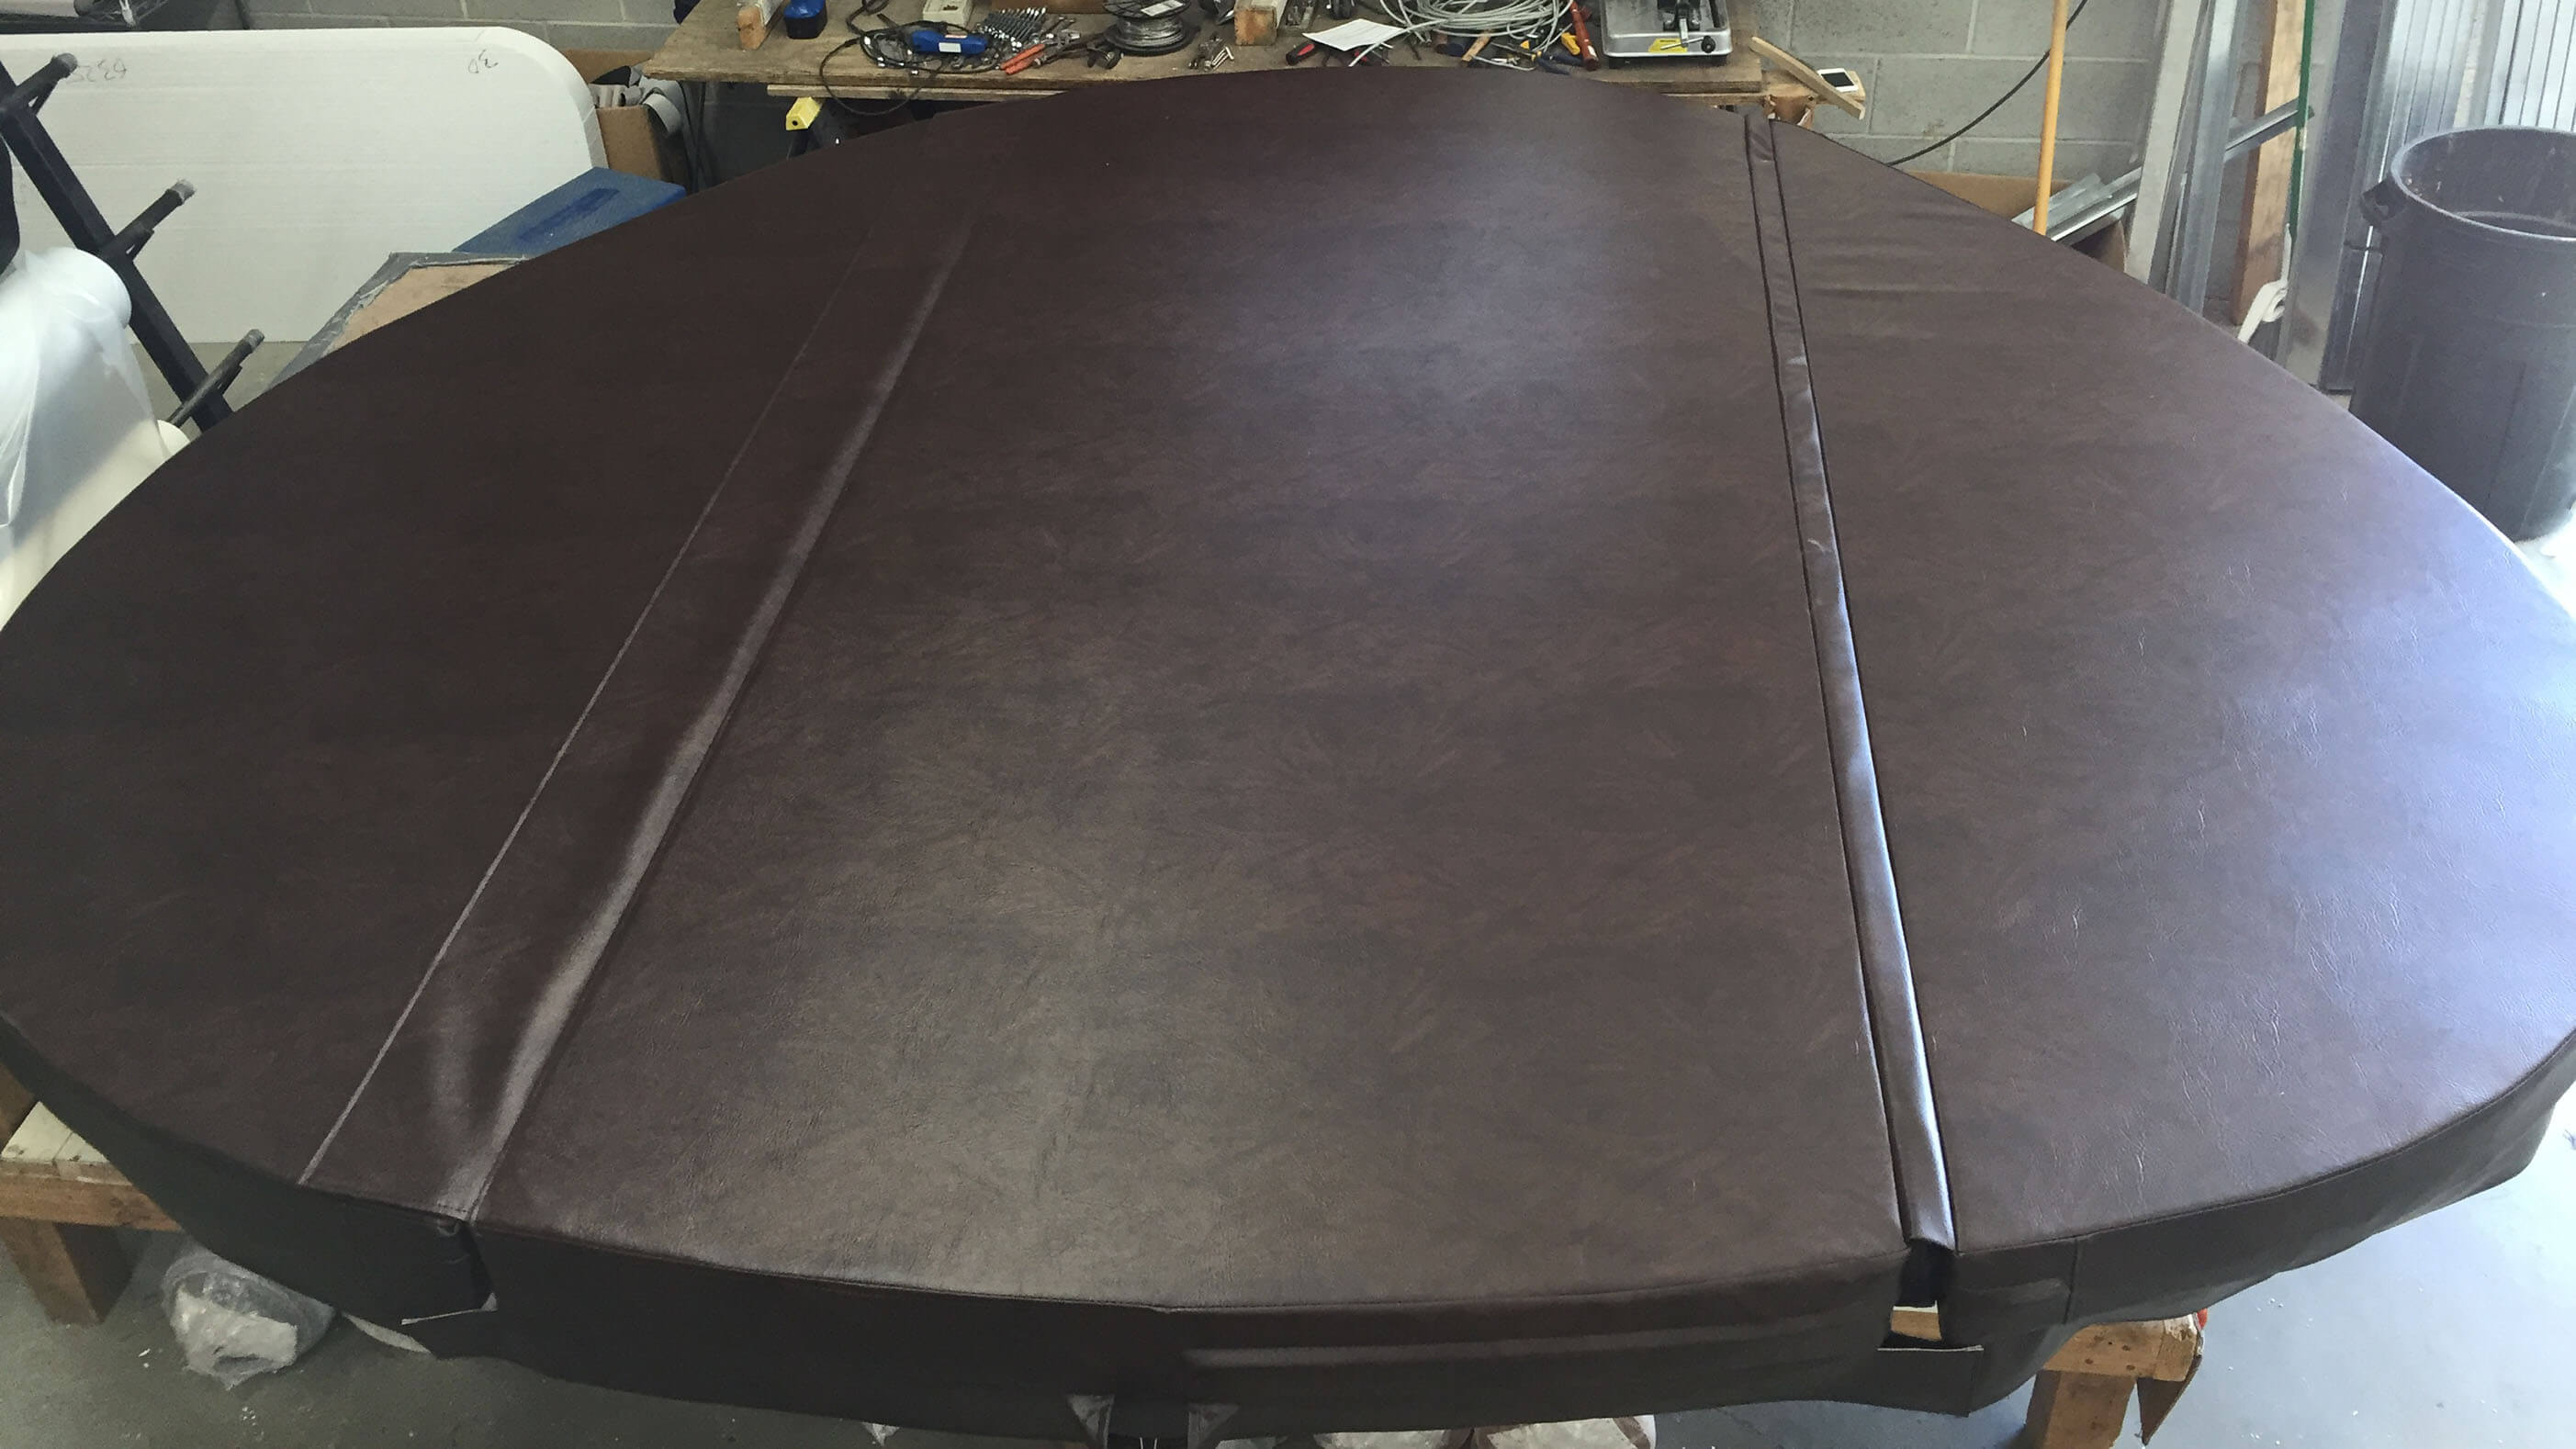 An Image of a spa cover after Cot Spa Covers came and fixed it up